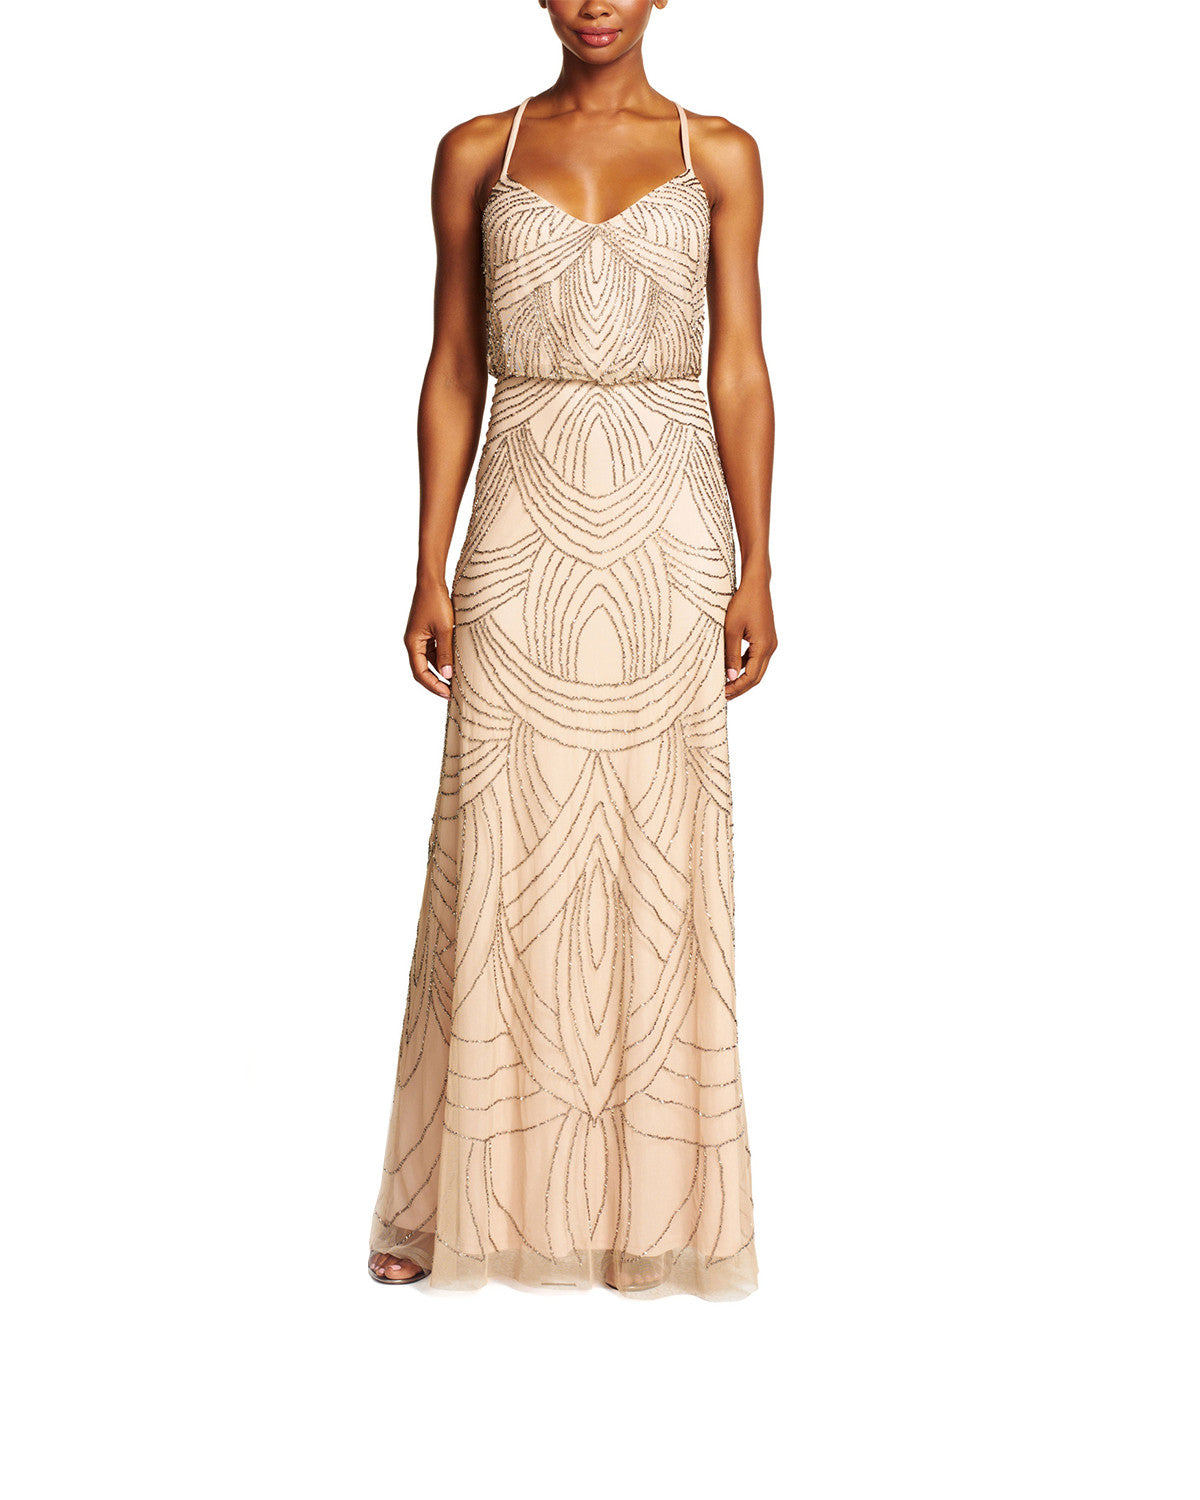 Adrianna Papell Beaded Blouson Gown in Taupe Pink - Sample